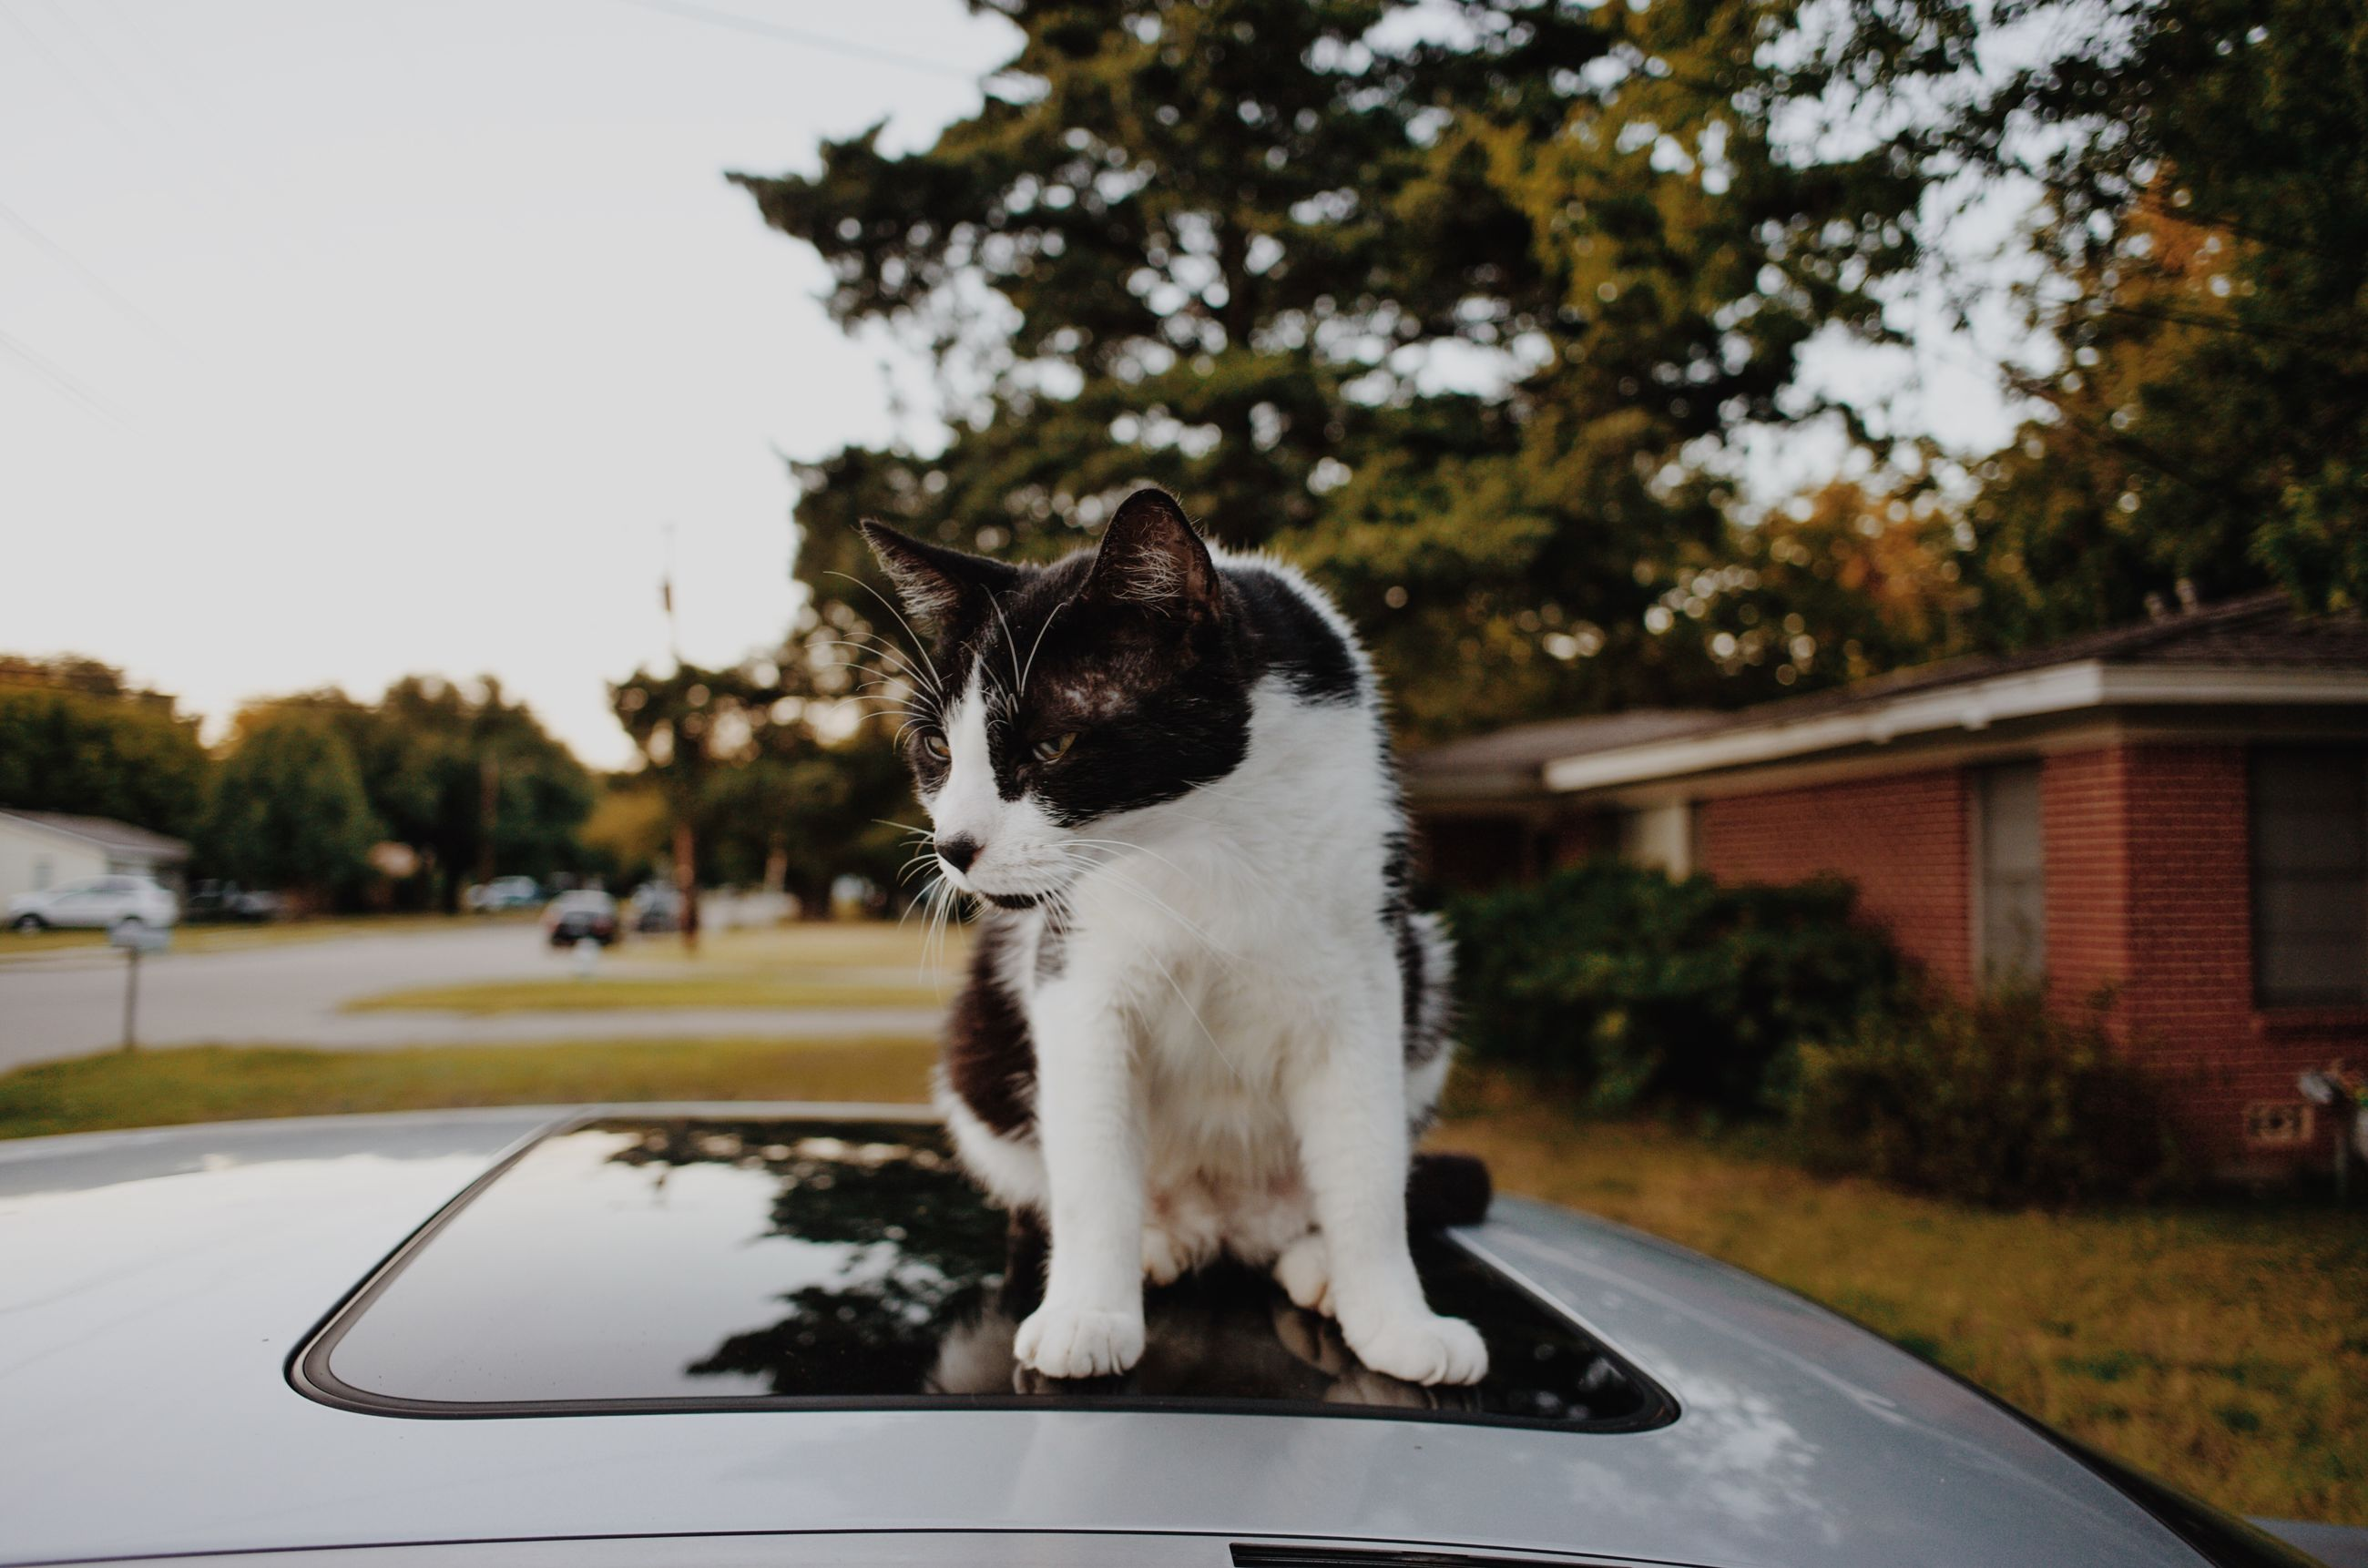 car, land vehicle, one animal, animal, motor vehicle, animal themes, mode of transportation, transportation, mammal, pets, cat, domestic, domestic animals, domestic cat, vertebrate, feline, focus on foreground, tree, plant, glass - material, no people, whisker